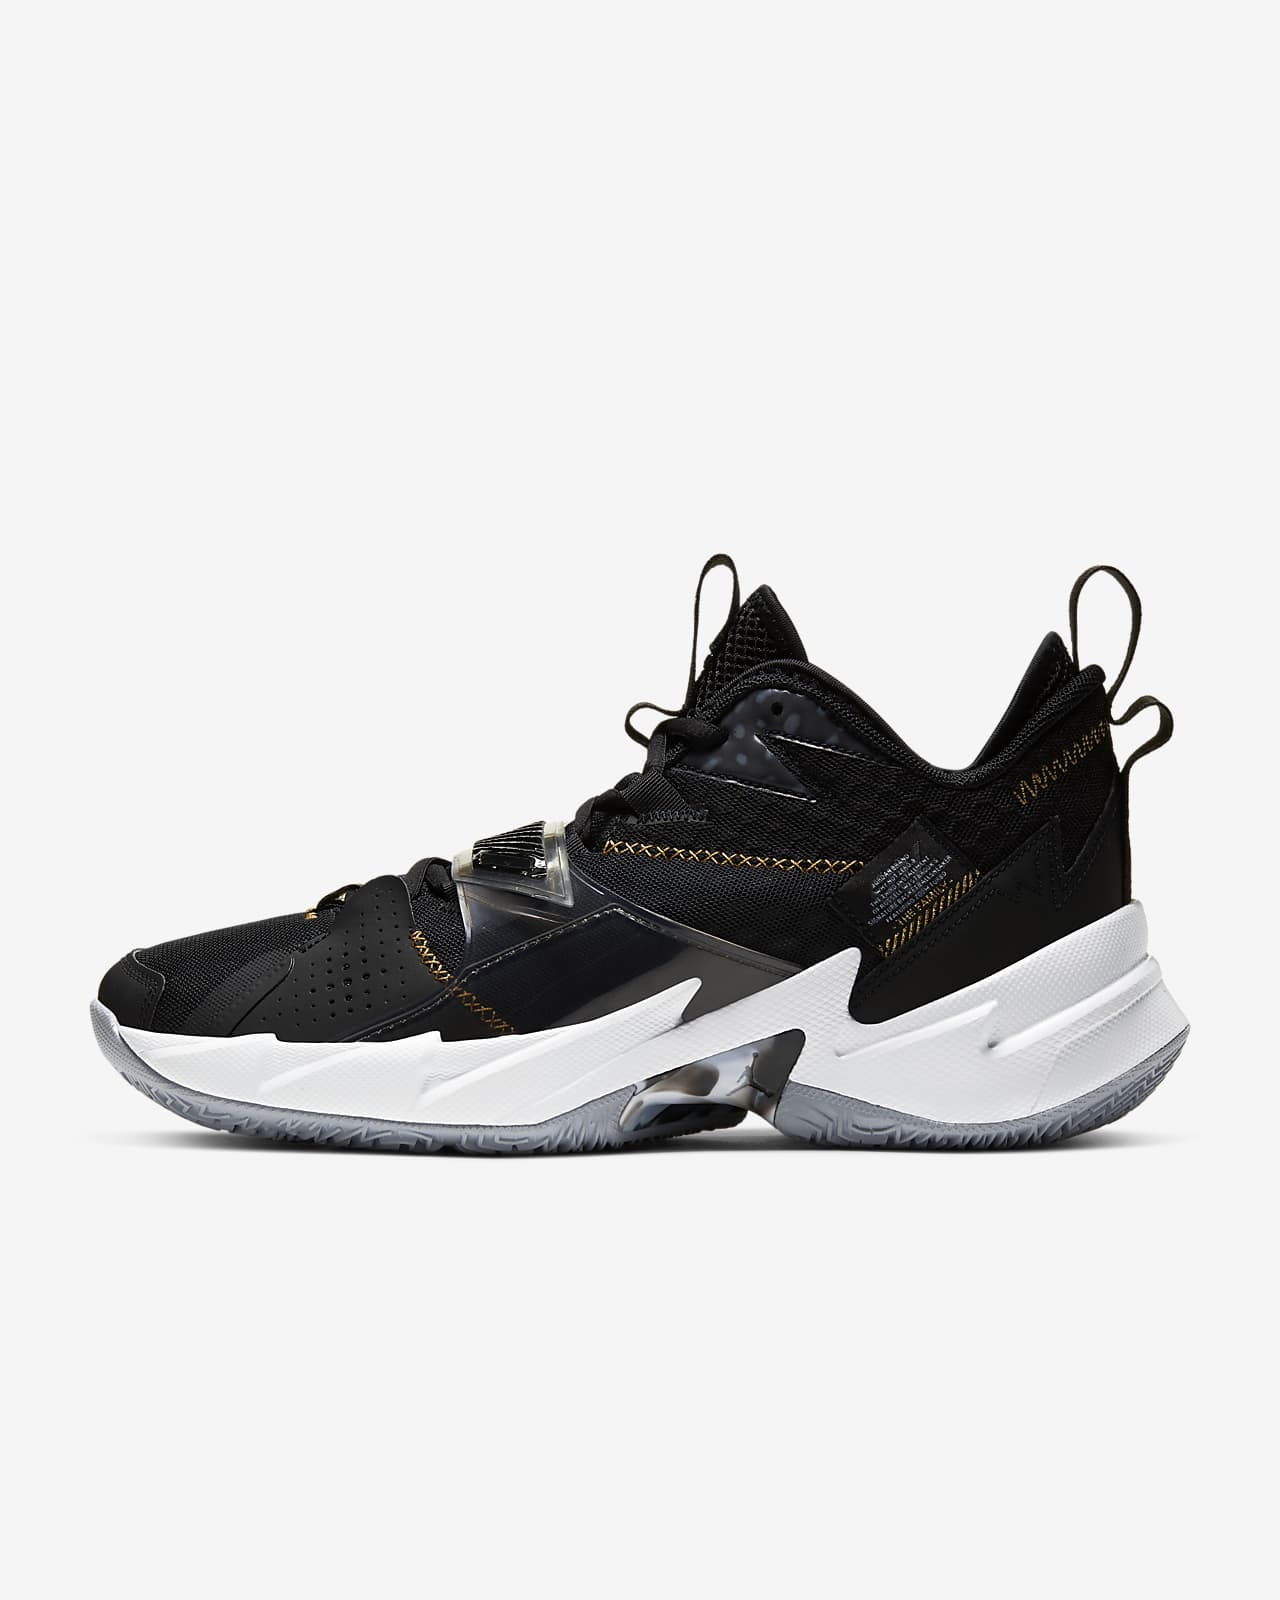 Jordan 'Why Not?' Zer0.3 Basketball Shoe